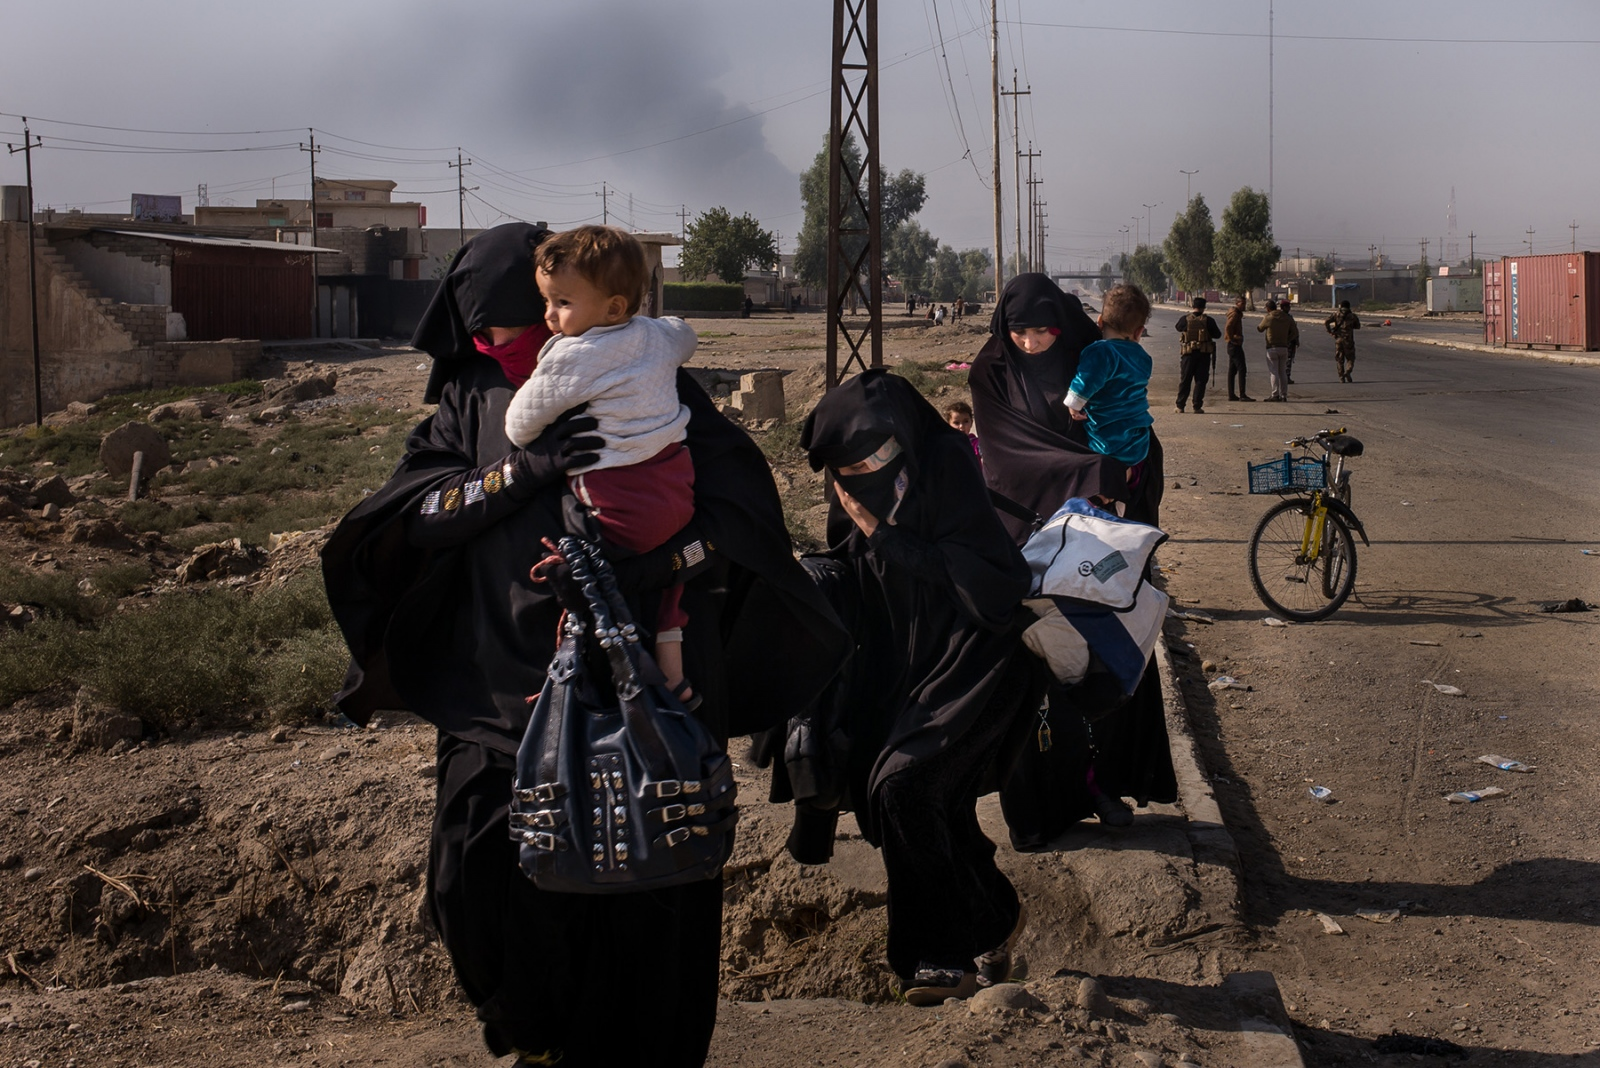 Women flee from fighting in Mosul carrying their children and the few belongings they could take near Gogjali, Iraq, on the outskirts of ISIS's so-called Caliphate, where women were forced to wear the full face veil (niqab) in addition to wearing gloves to cover up all skin except the eyes.